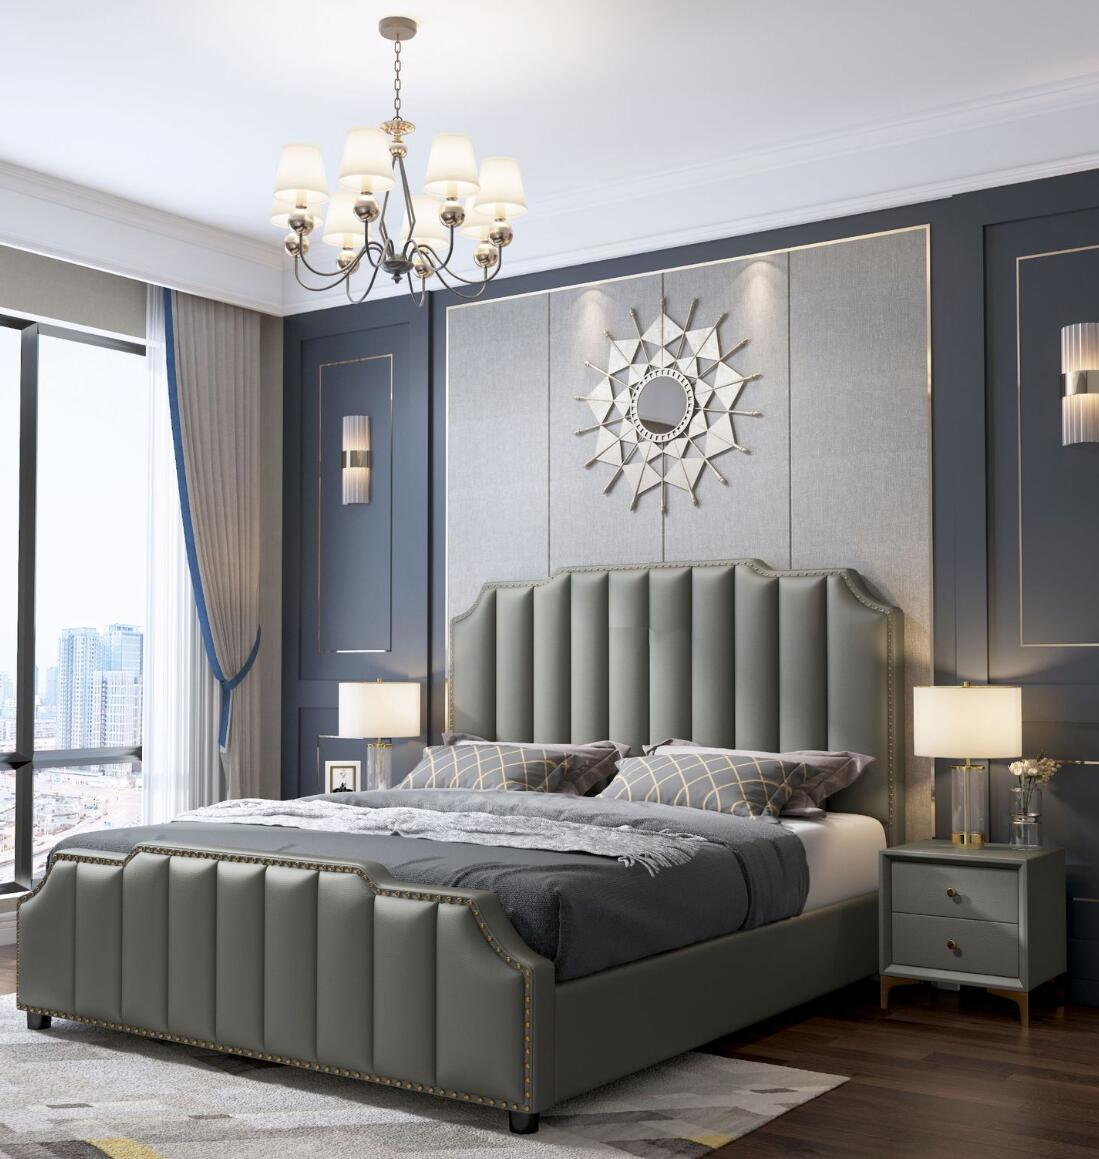 Wholesale Latest Designs Luxury Modern Simple Bed Room Furniture Bedroom Set Bed Frame Solid Wooden Double King Size Leather Bed Buy White Leather Headboard Bed Wholesale Latest Designs Luxury Moden Bed Solid Wooden